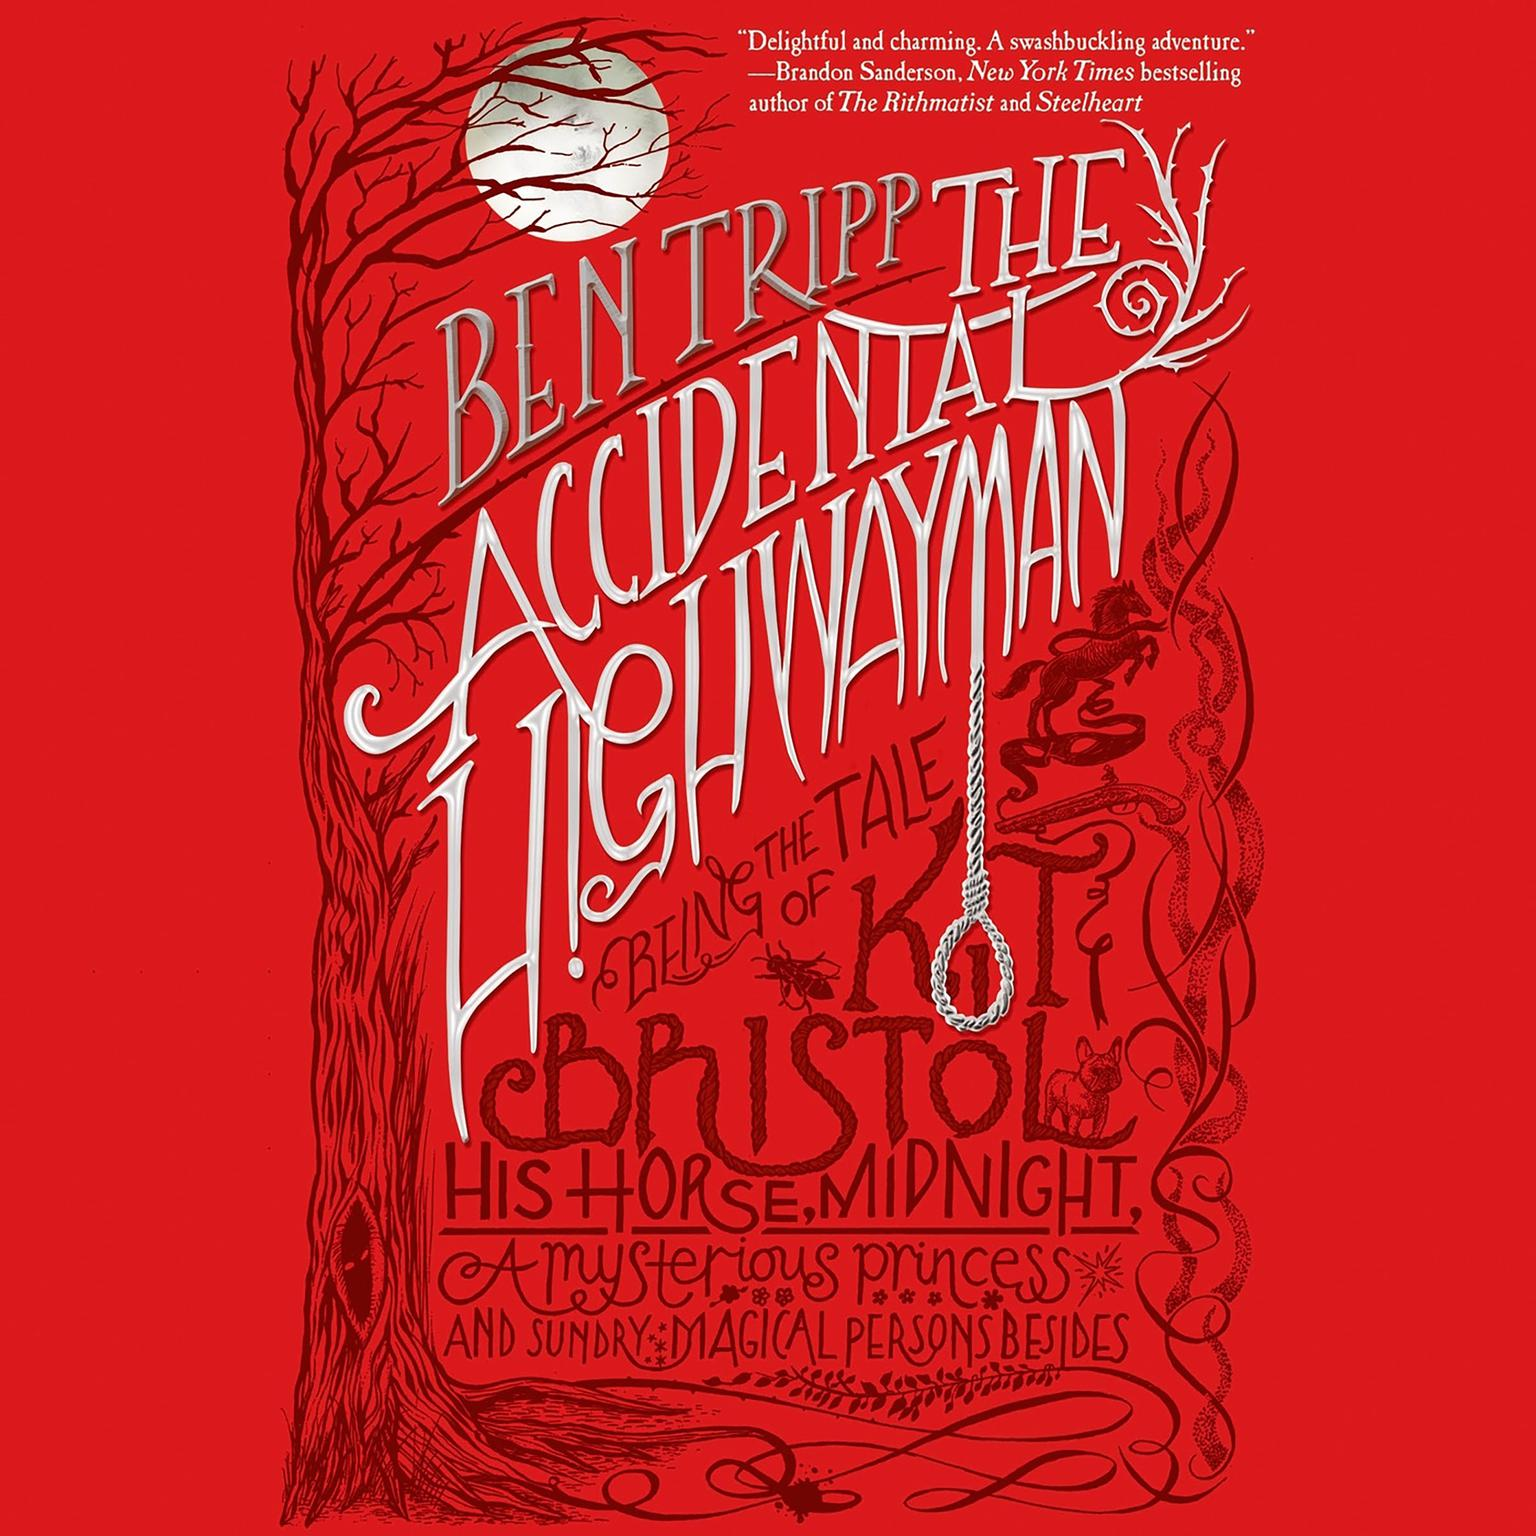 Printable The Accidental Highwayman: Being the Tale of Kit Bristol, His Horse Midnight, a Mysterious Princess, and Sundry Magical Persons Besides Audiobook Cover Art